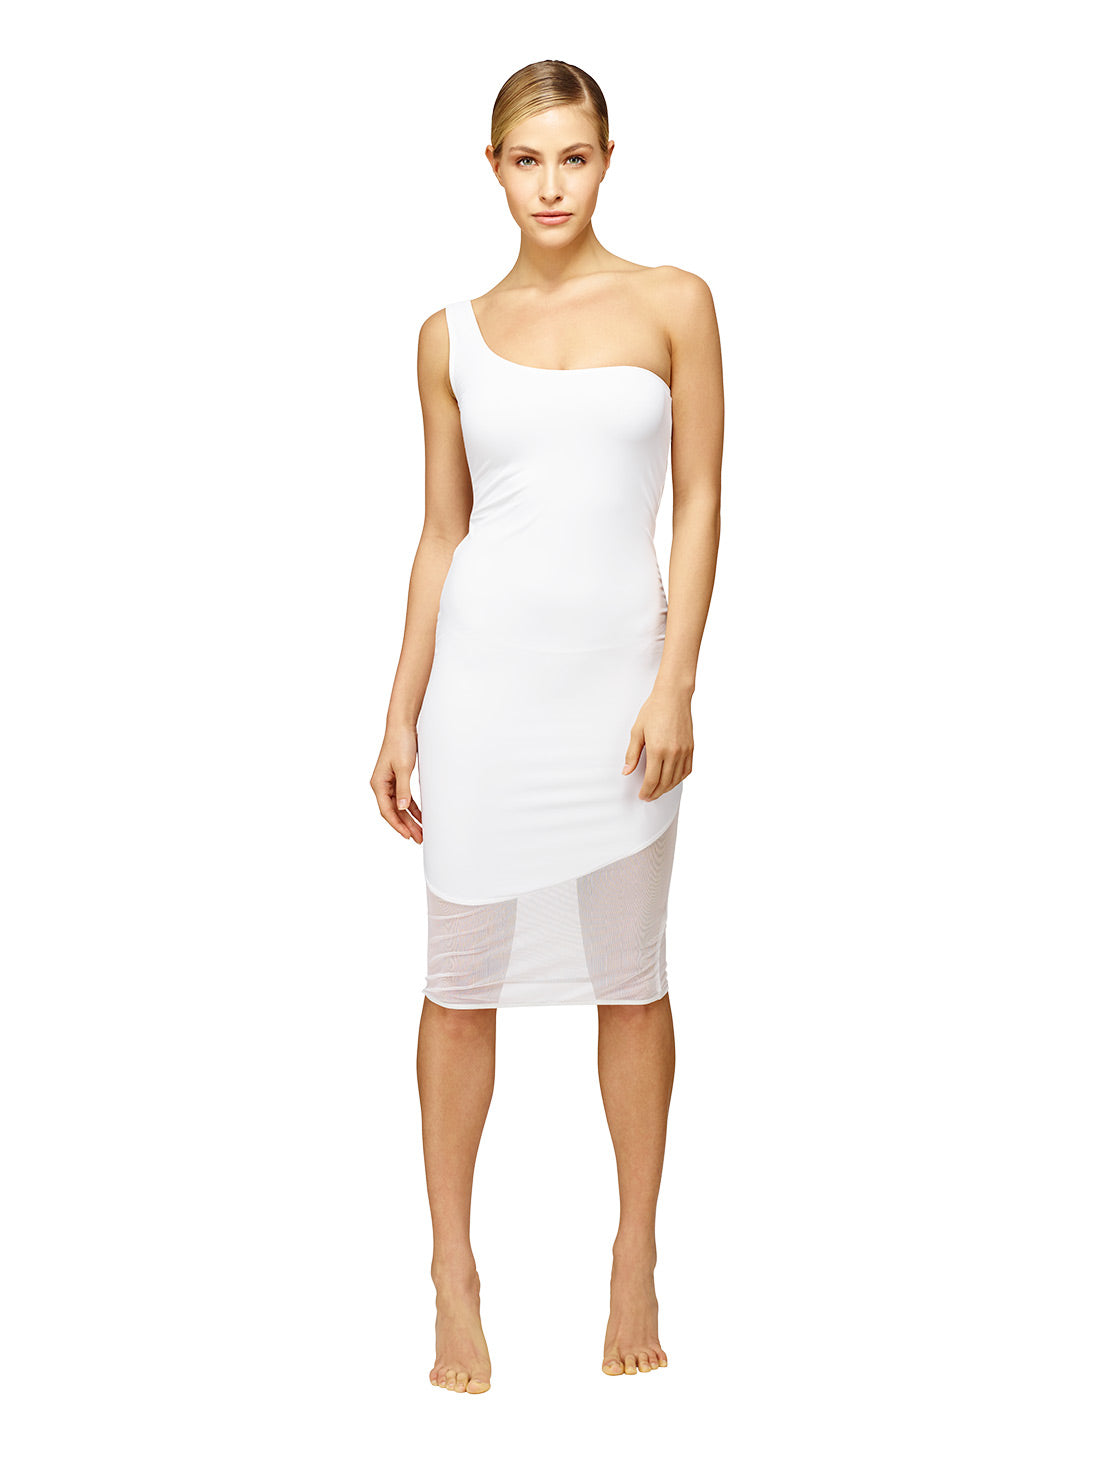 Off side classic ISKKA pool side cocktail dress. We love this dress.